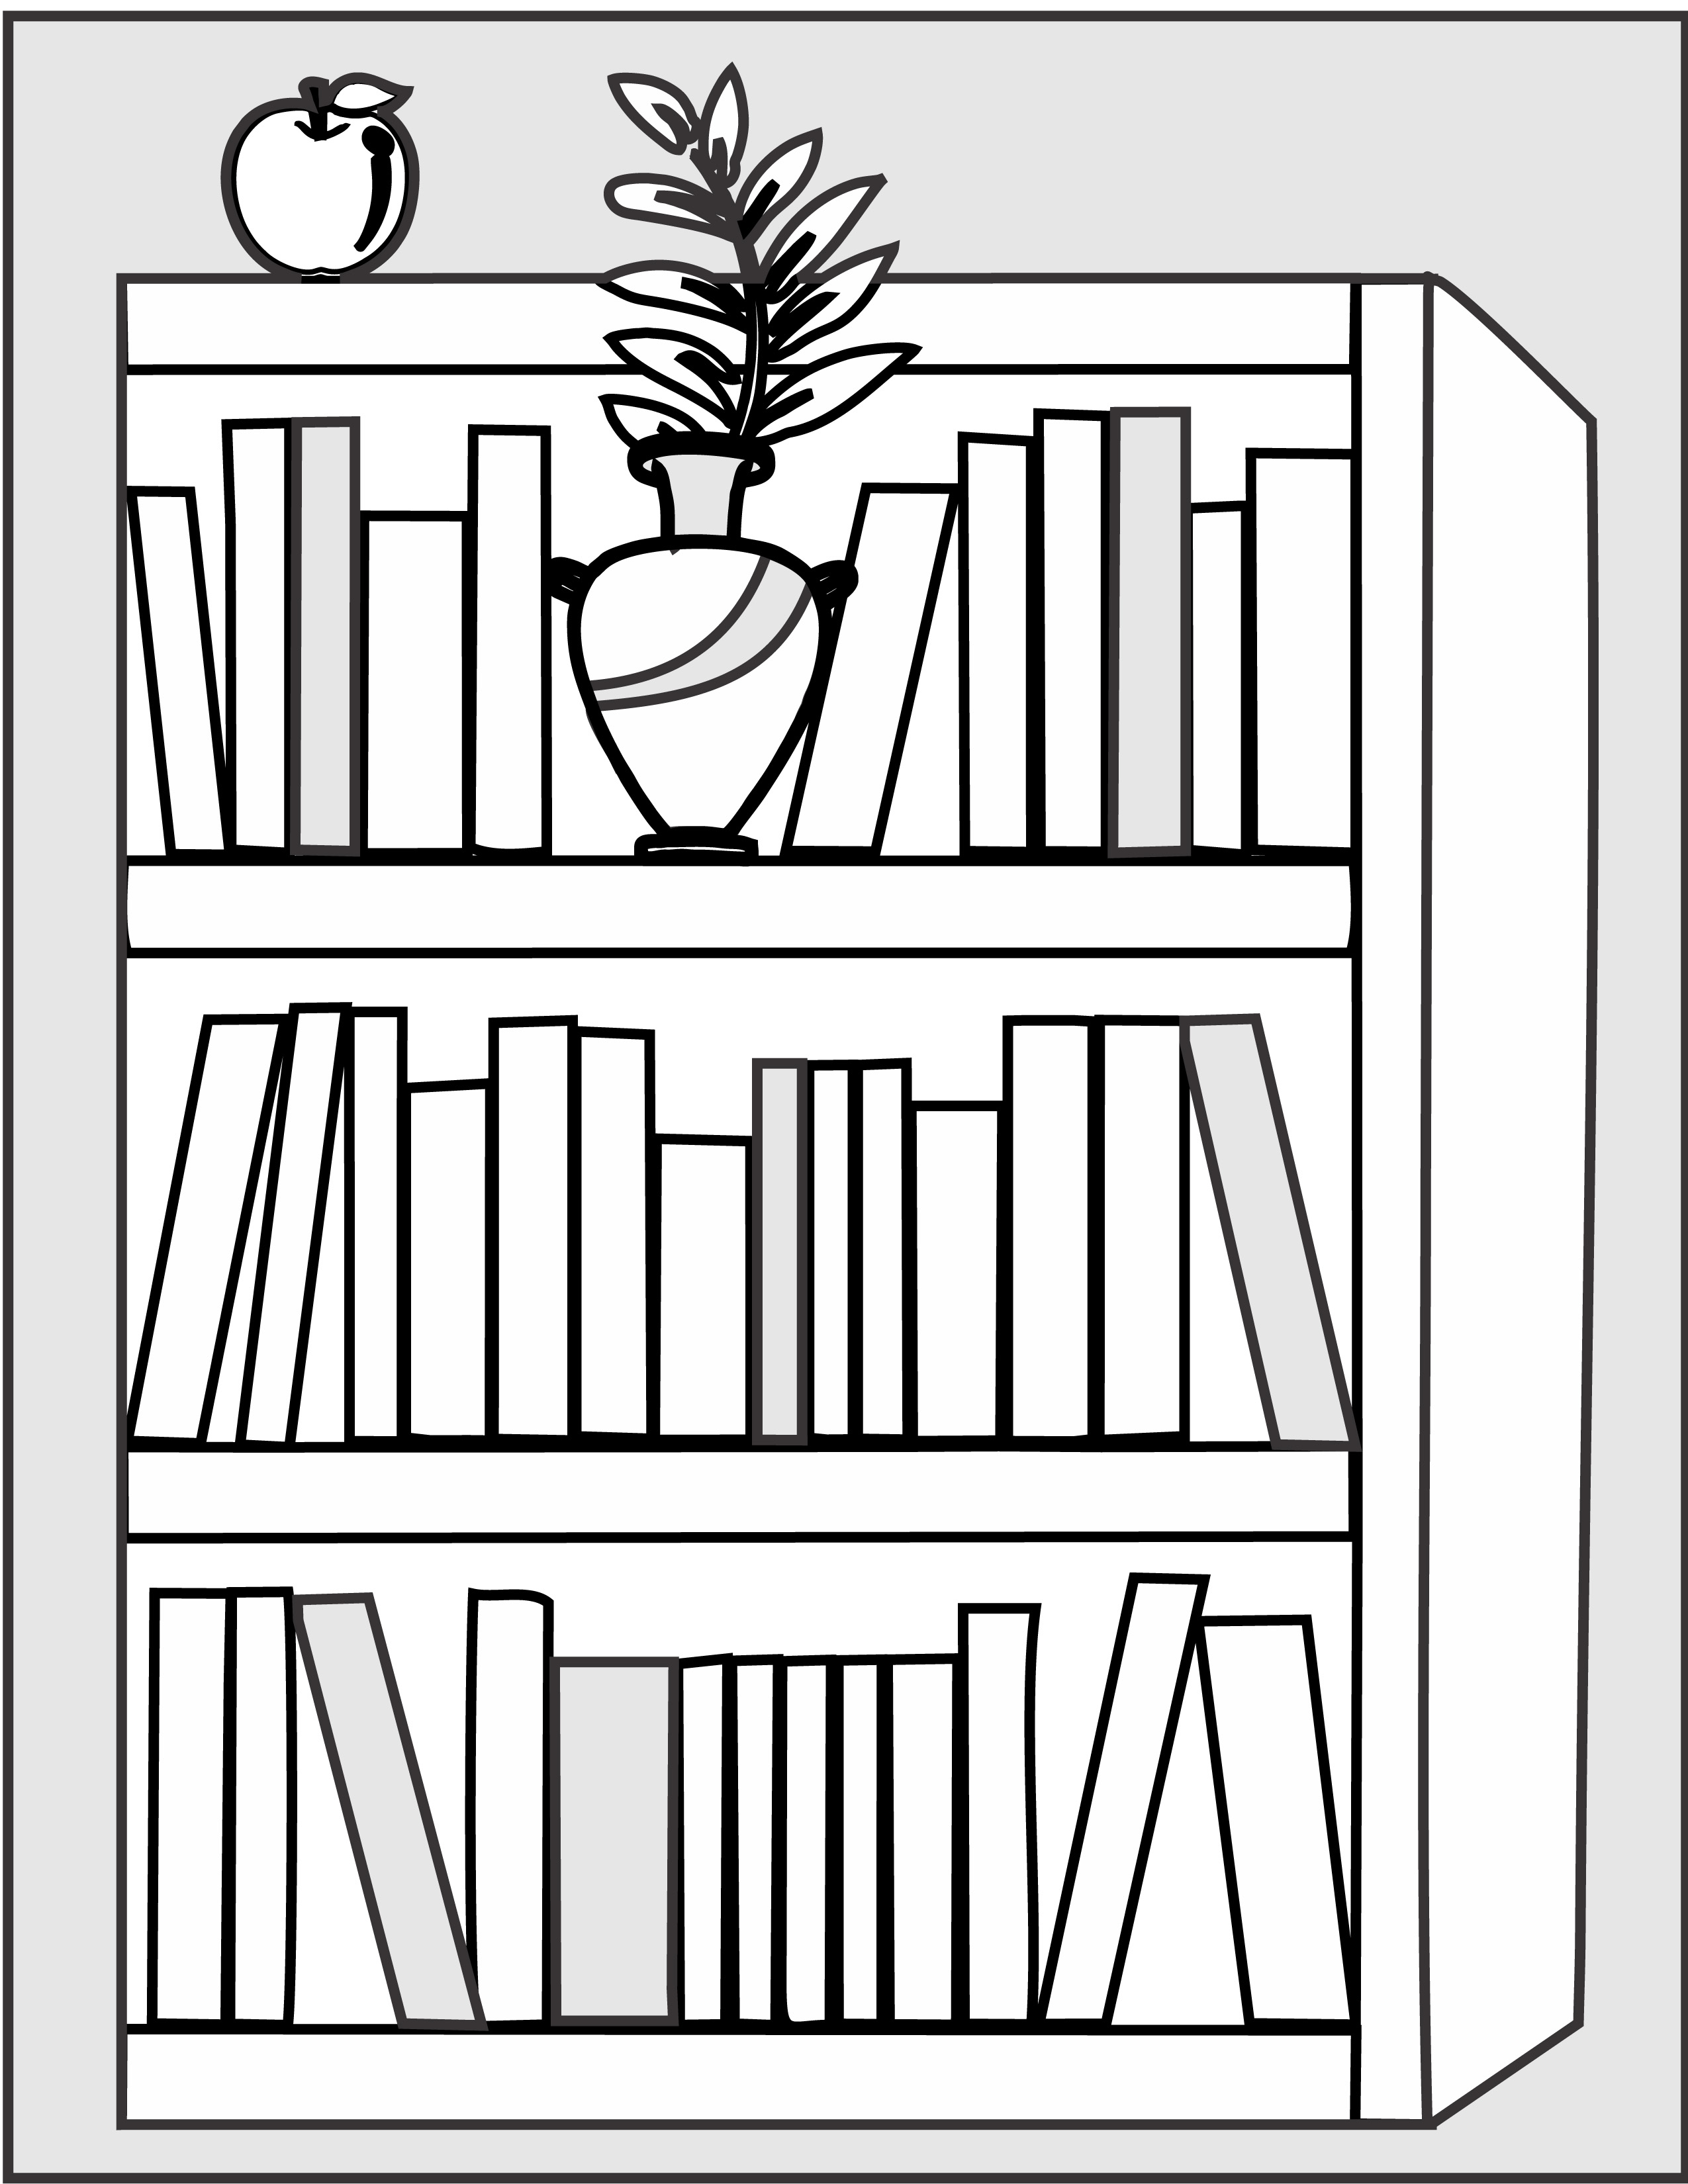 CLIPART, PHOTOS, COLORING PAGES